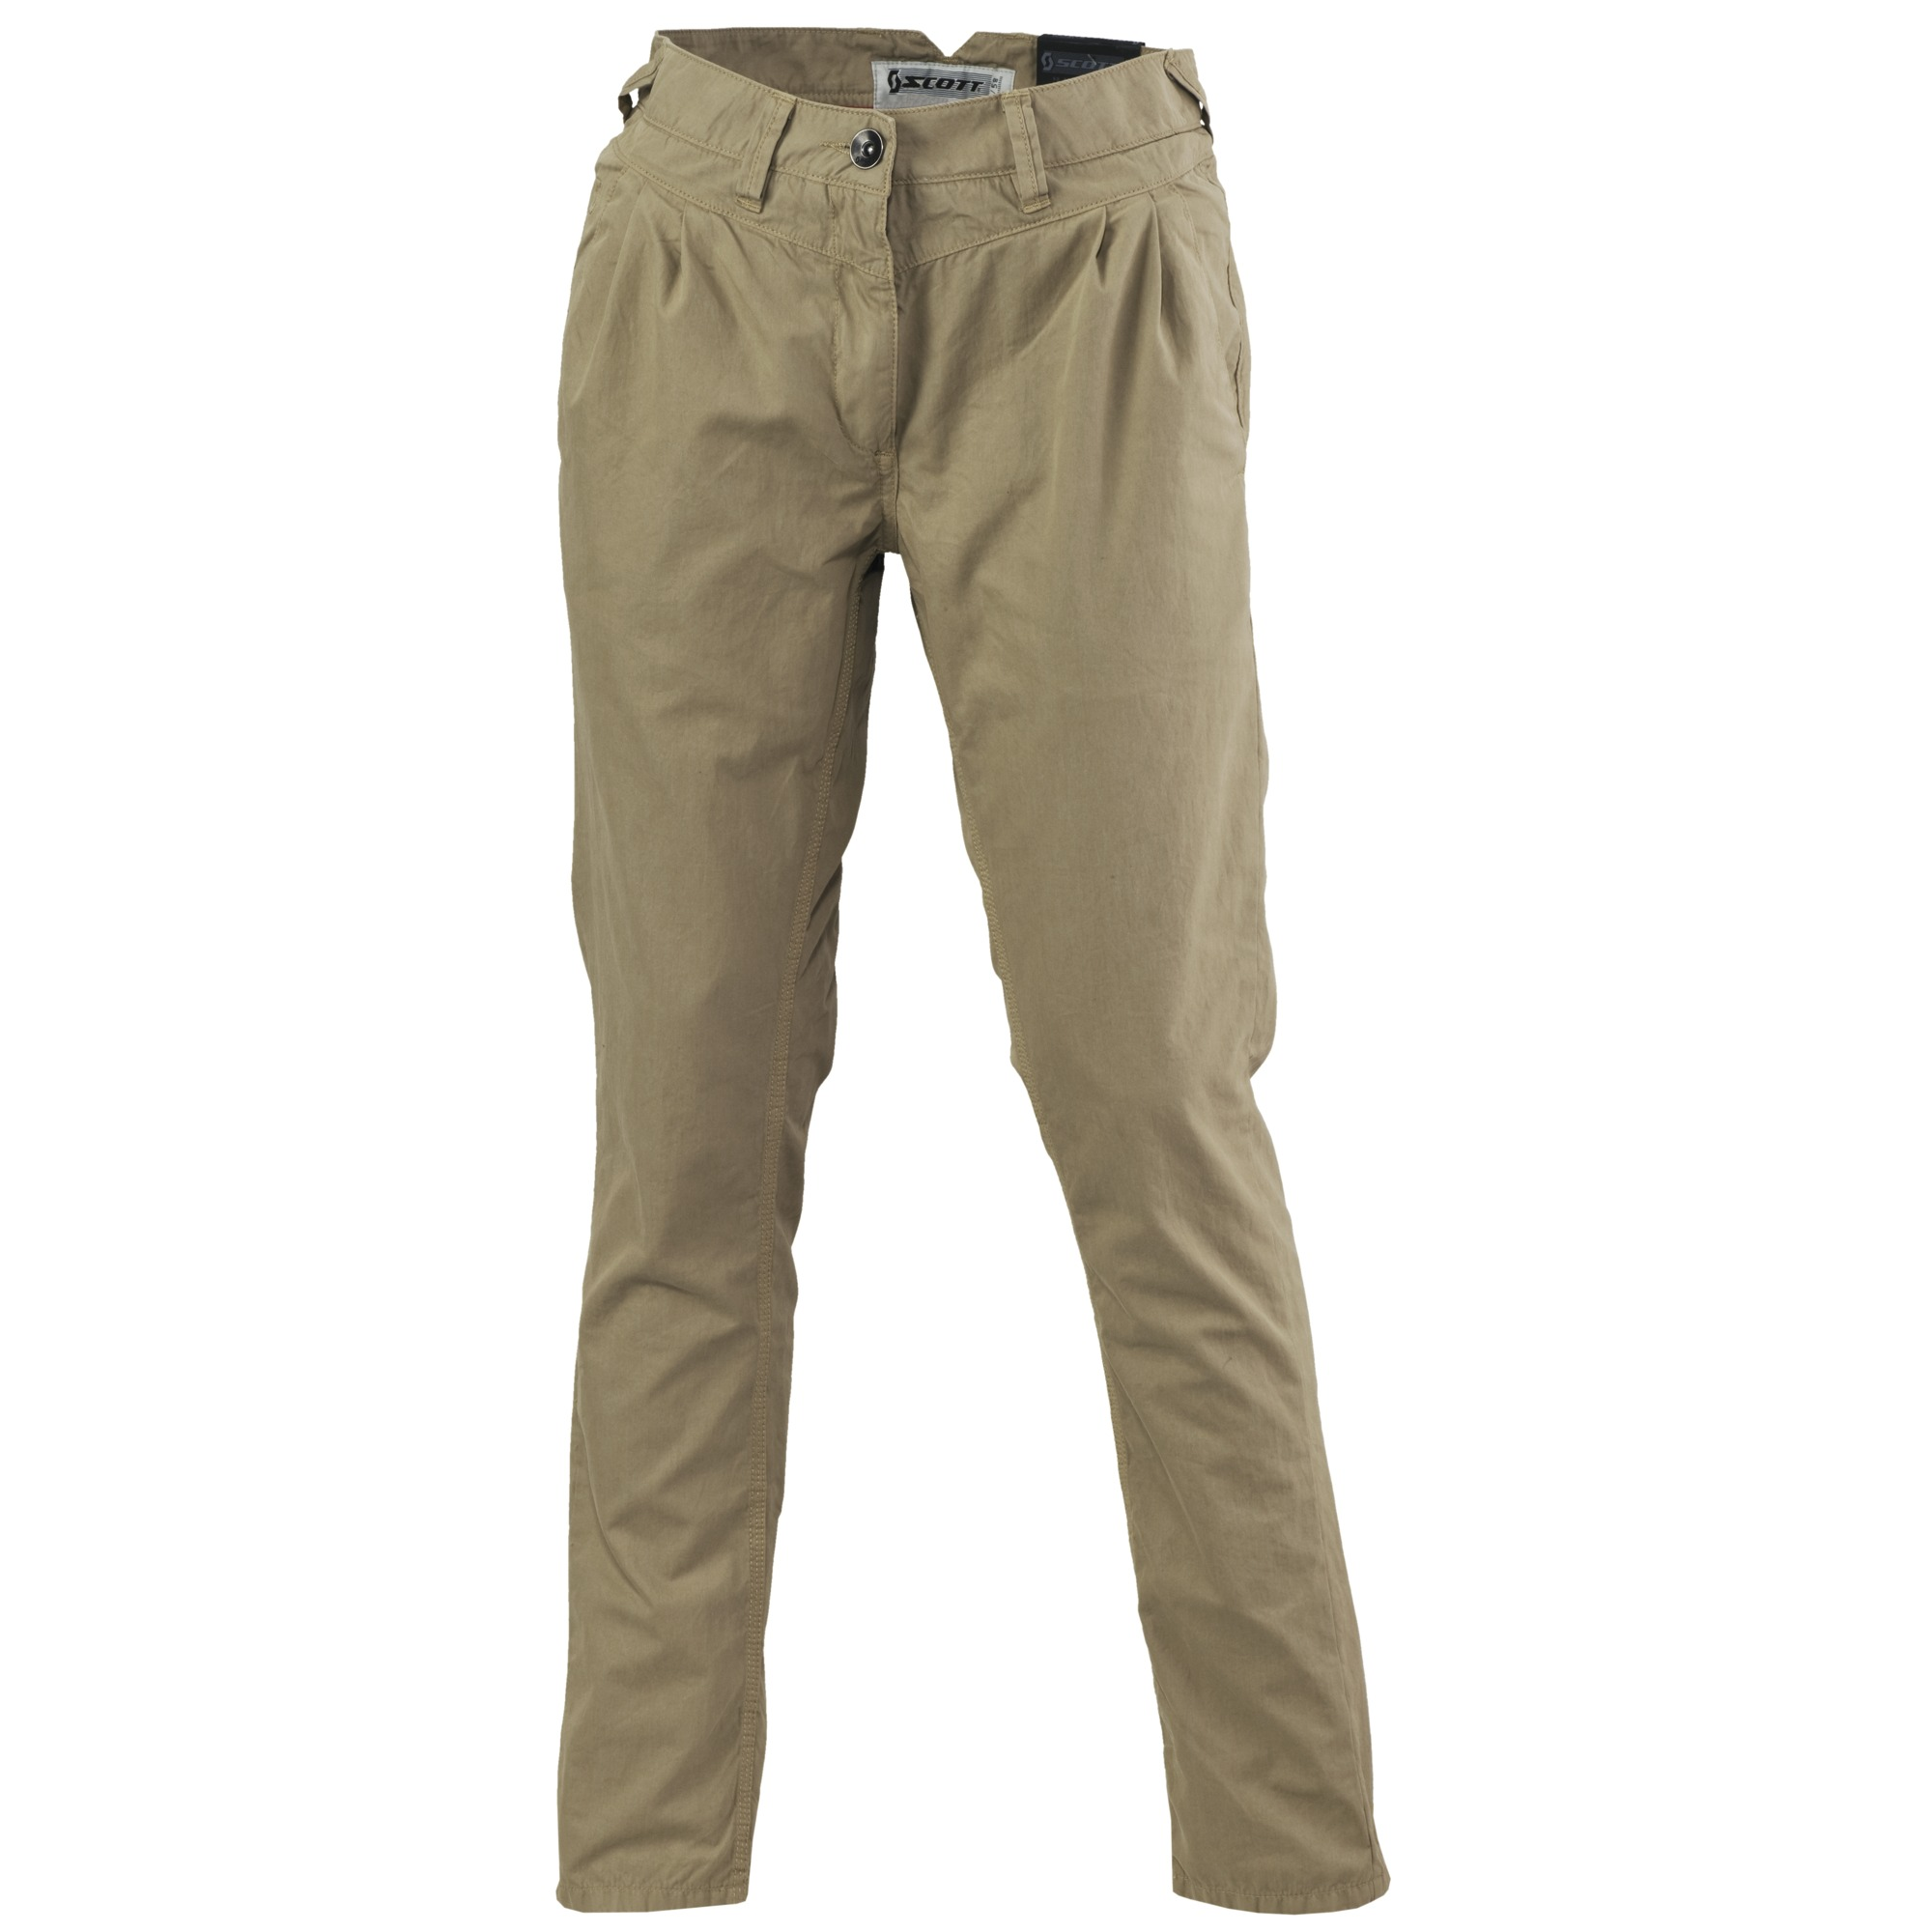 Creative Some Of The Most Comfortable And Durable Pants Come In The Form Of Chino Pants For Women Chino Is A Type Of Fabric That Is Usually Made Of 100% Cotton Although Some Modern Chinos Use A Blend Of Synthetic And Cotton To Achieve